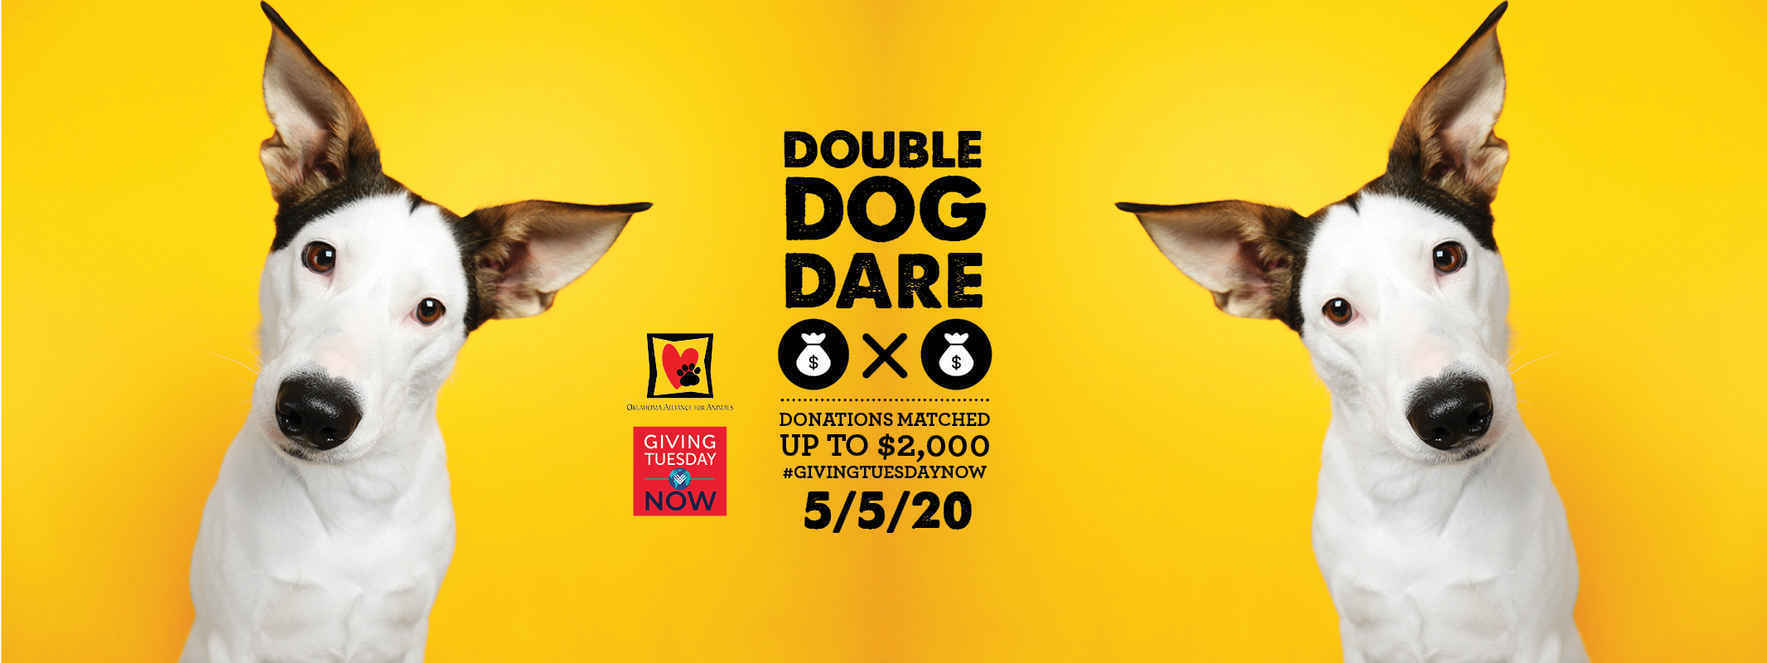 Double Your Donation Today image